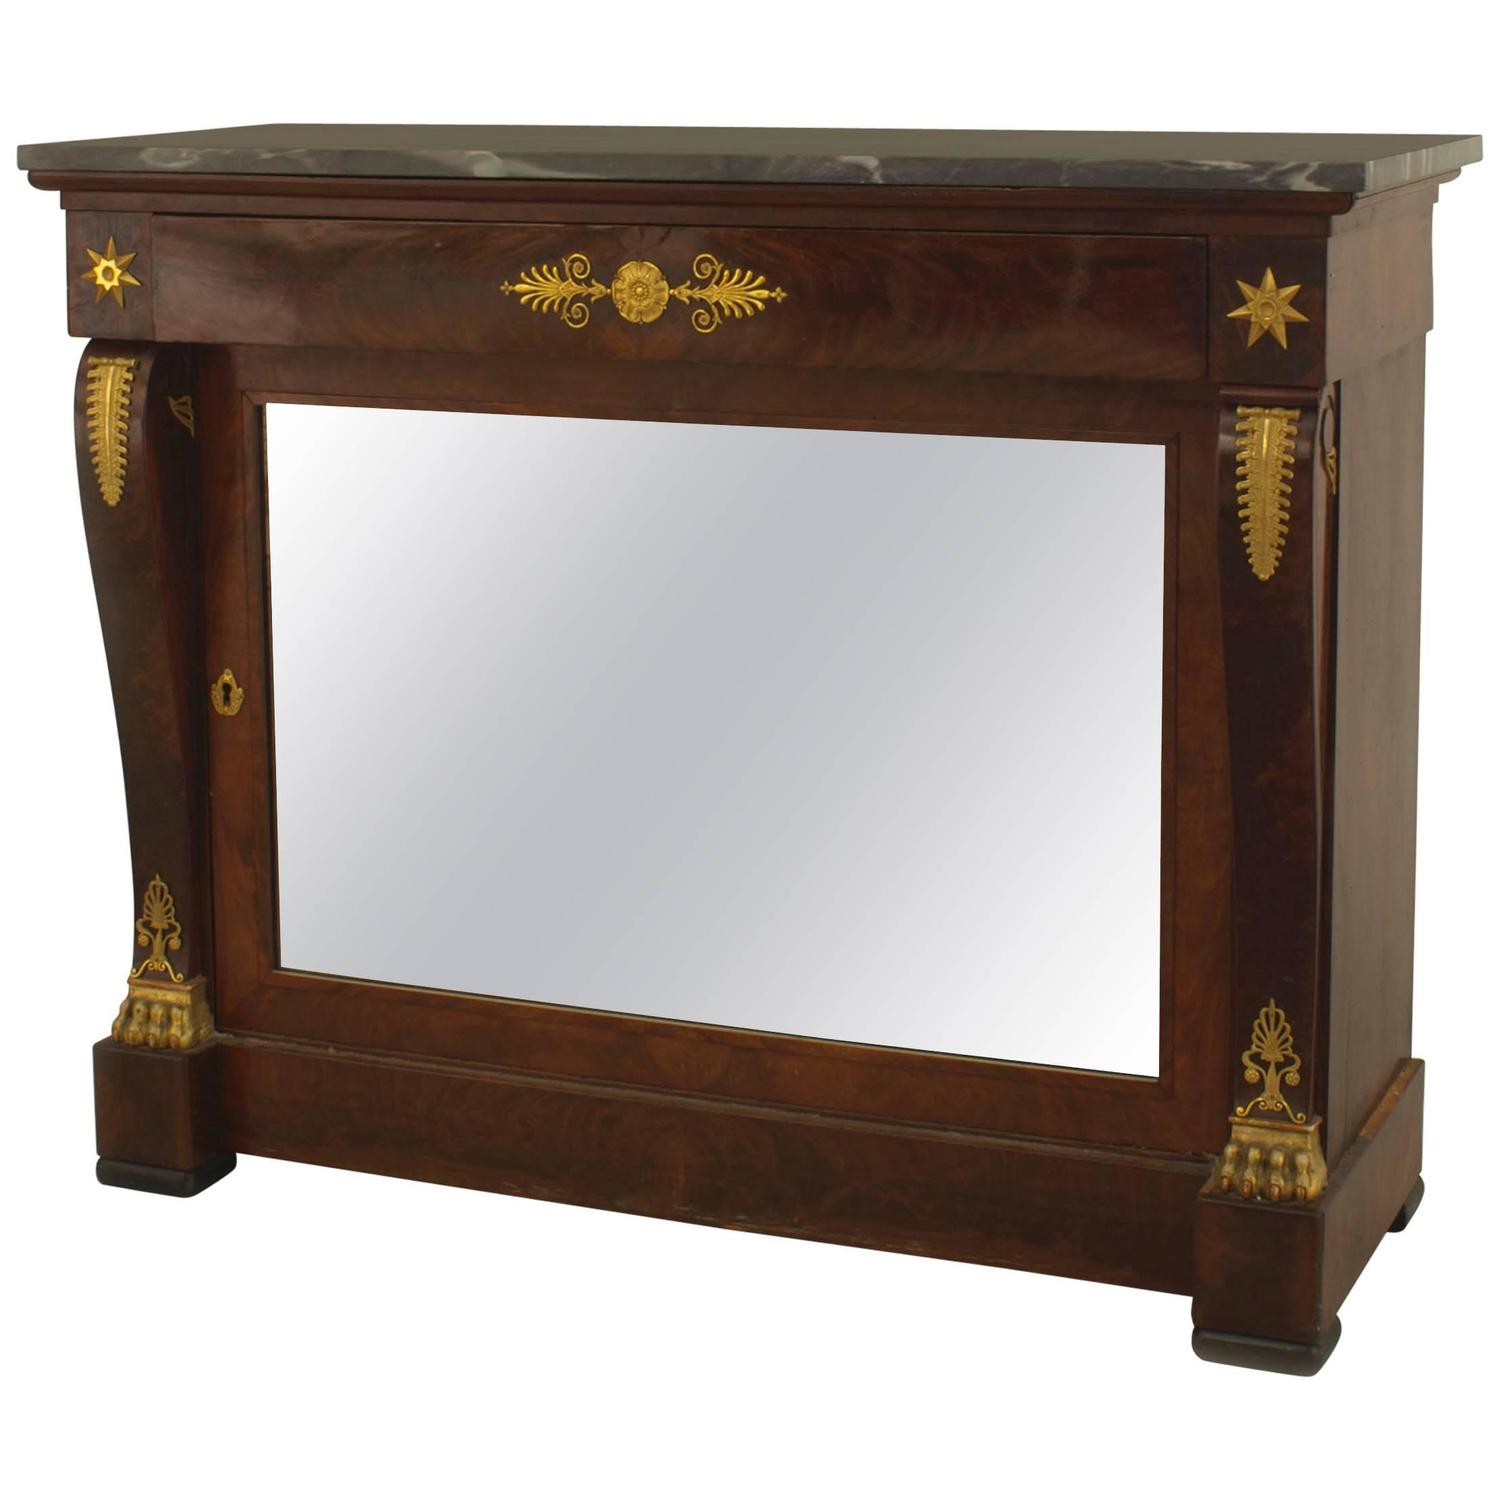 1stdibs Brass Smoked Glass French Console Table: Mahogany And Bronze Trimmed Console Table For Sale At 1stdibs